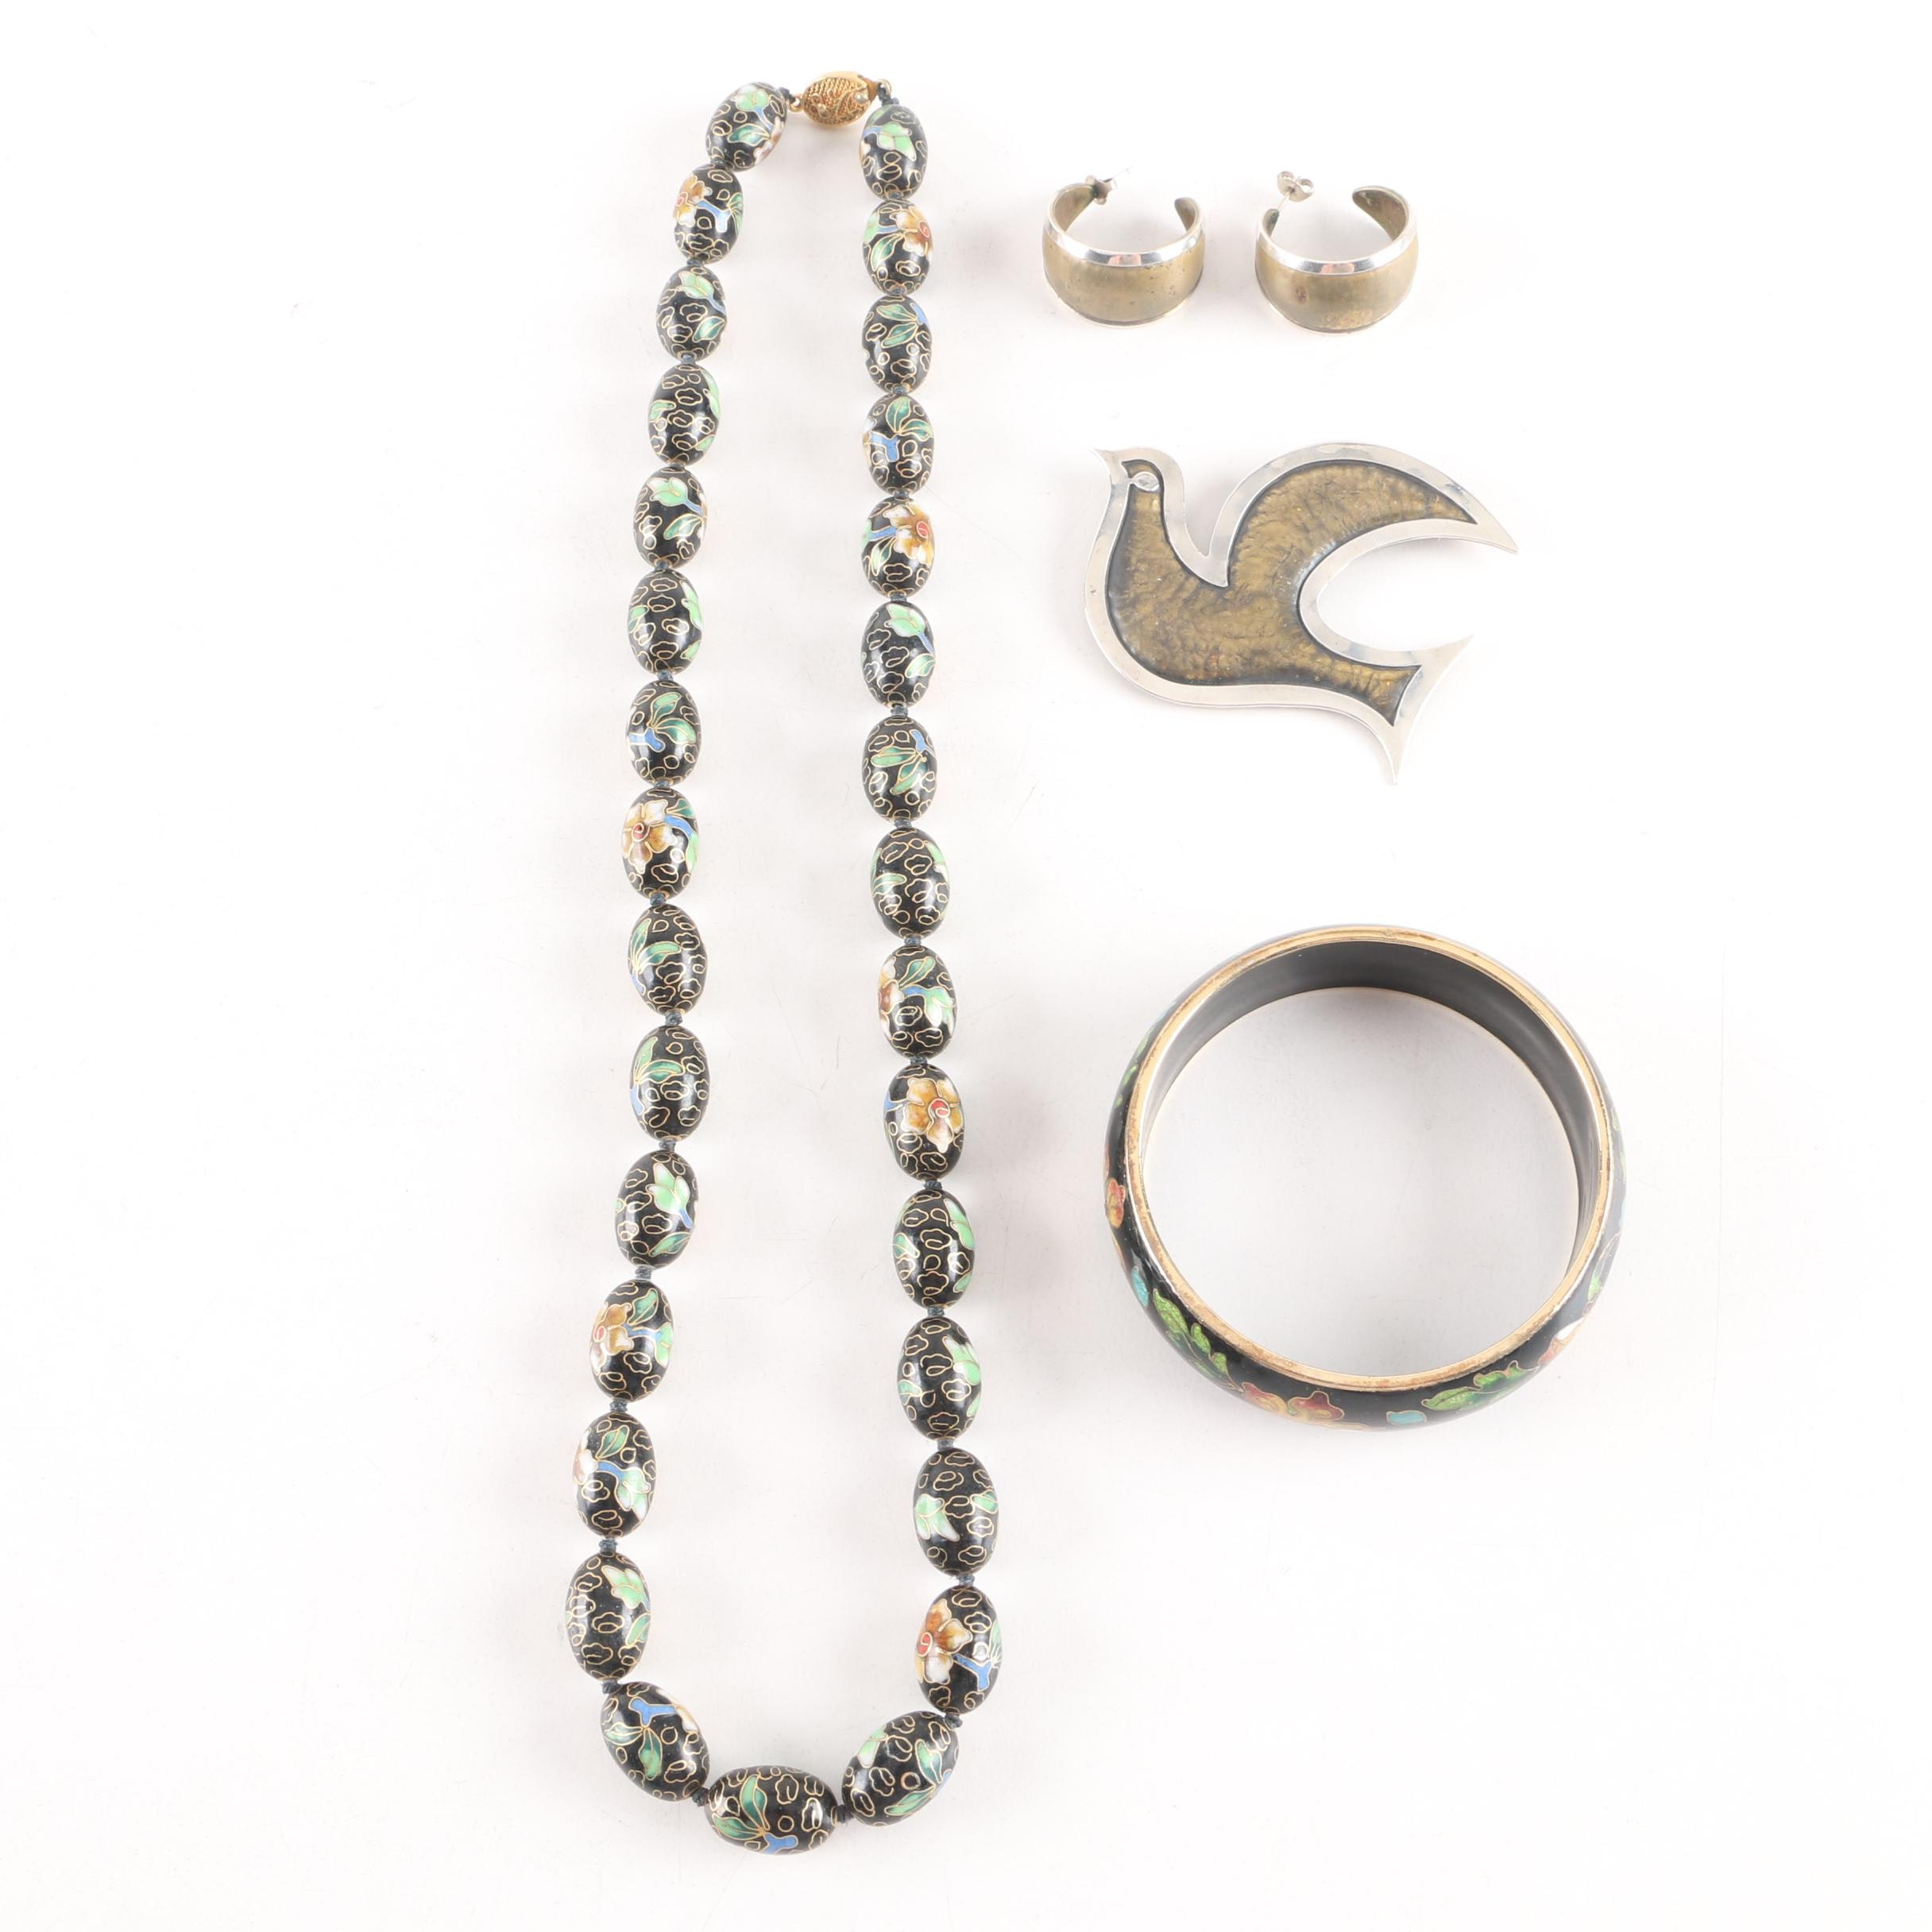 Cloisonne Enamel Bracelet and Necklace Including James Avery Brooch and Earrings